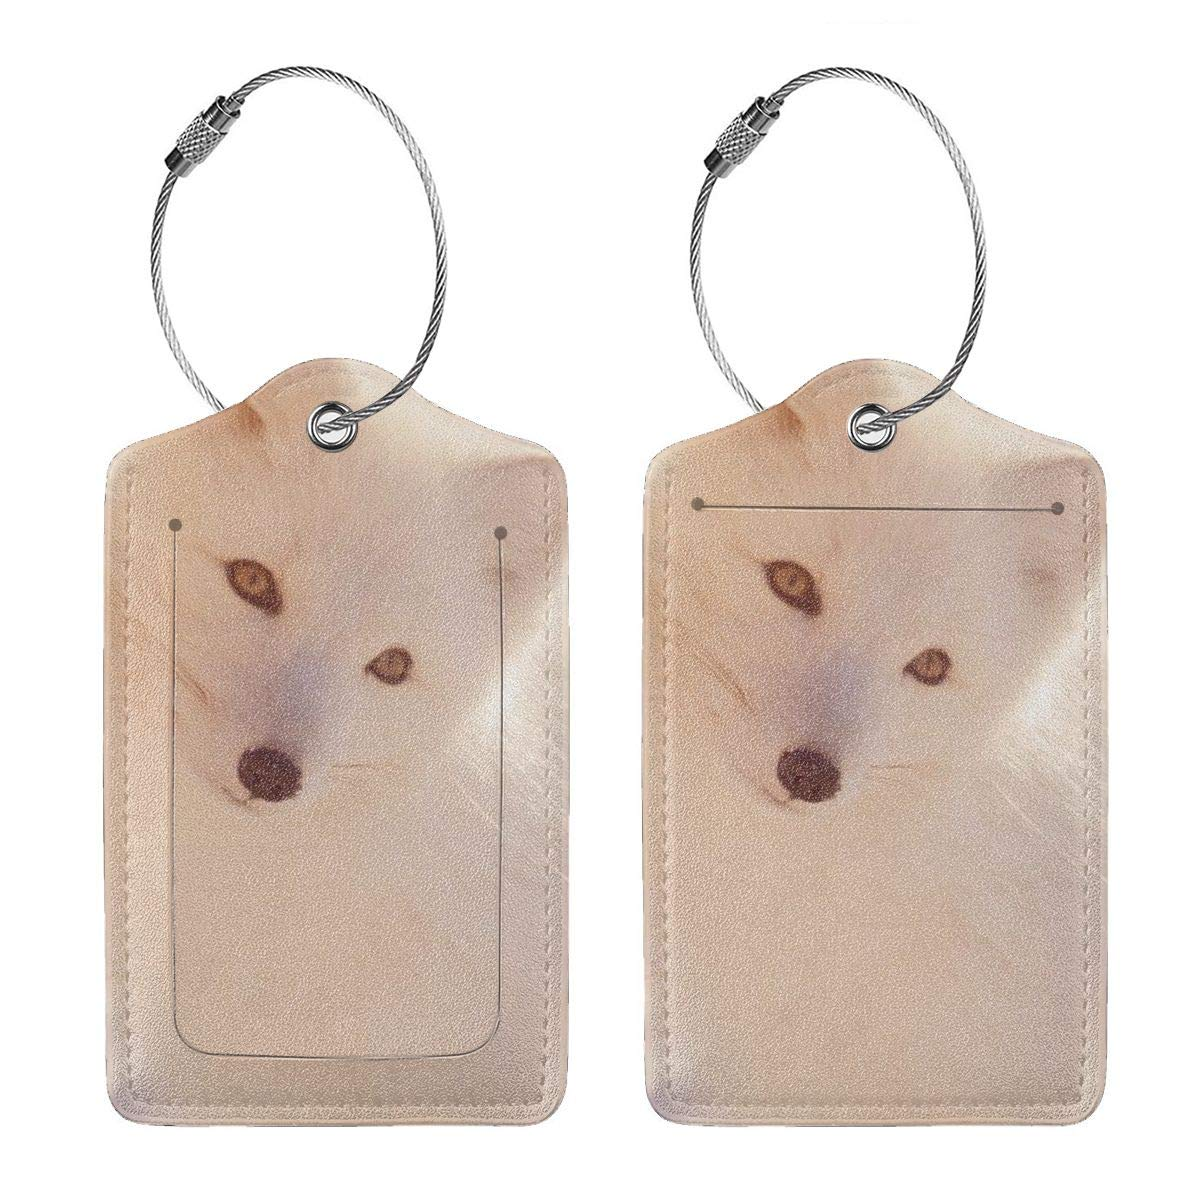 Winter Fox White Leather Luggage Tags Suitcase Tag Travel Bag Labels With Privacy Cover For Men Women 2 Pack 4 Pack